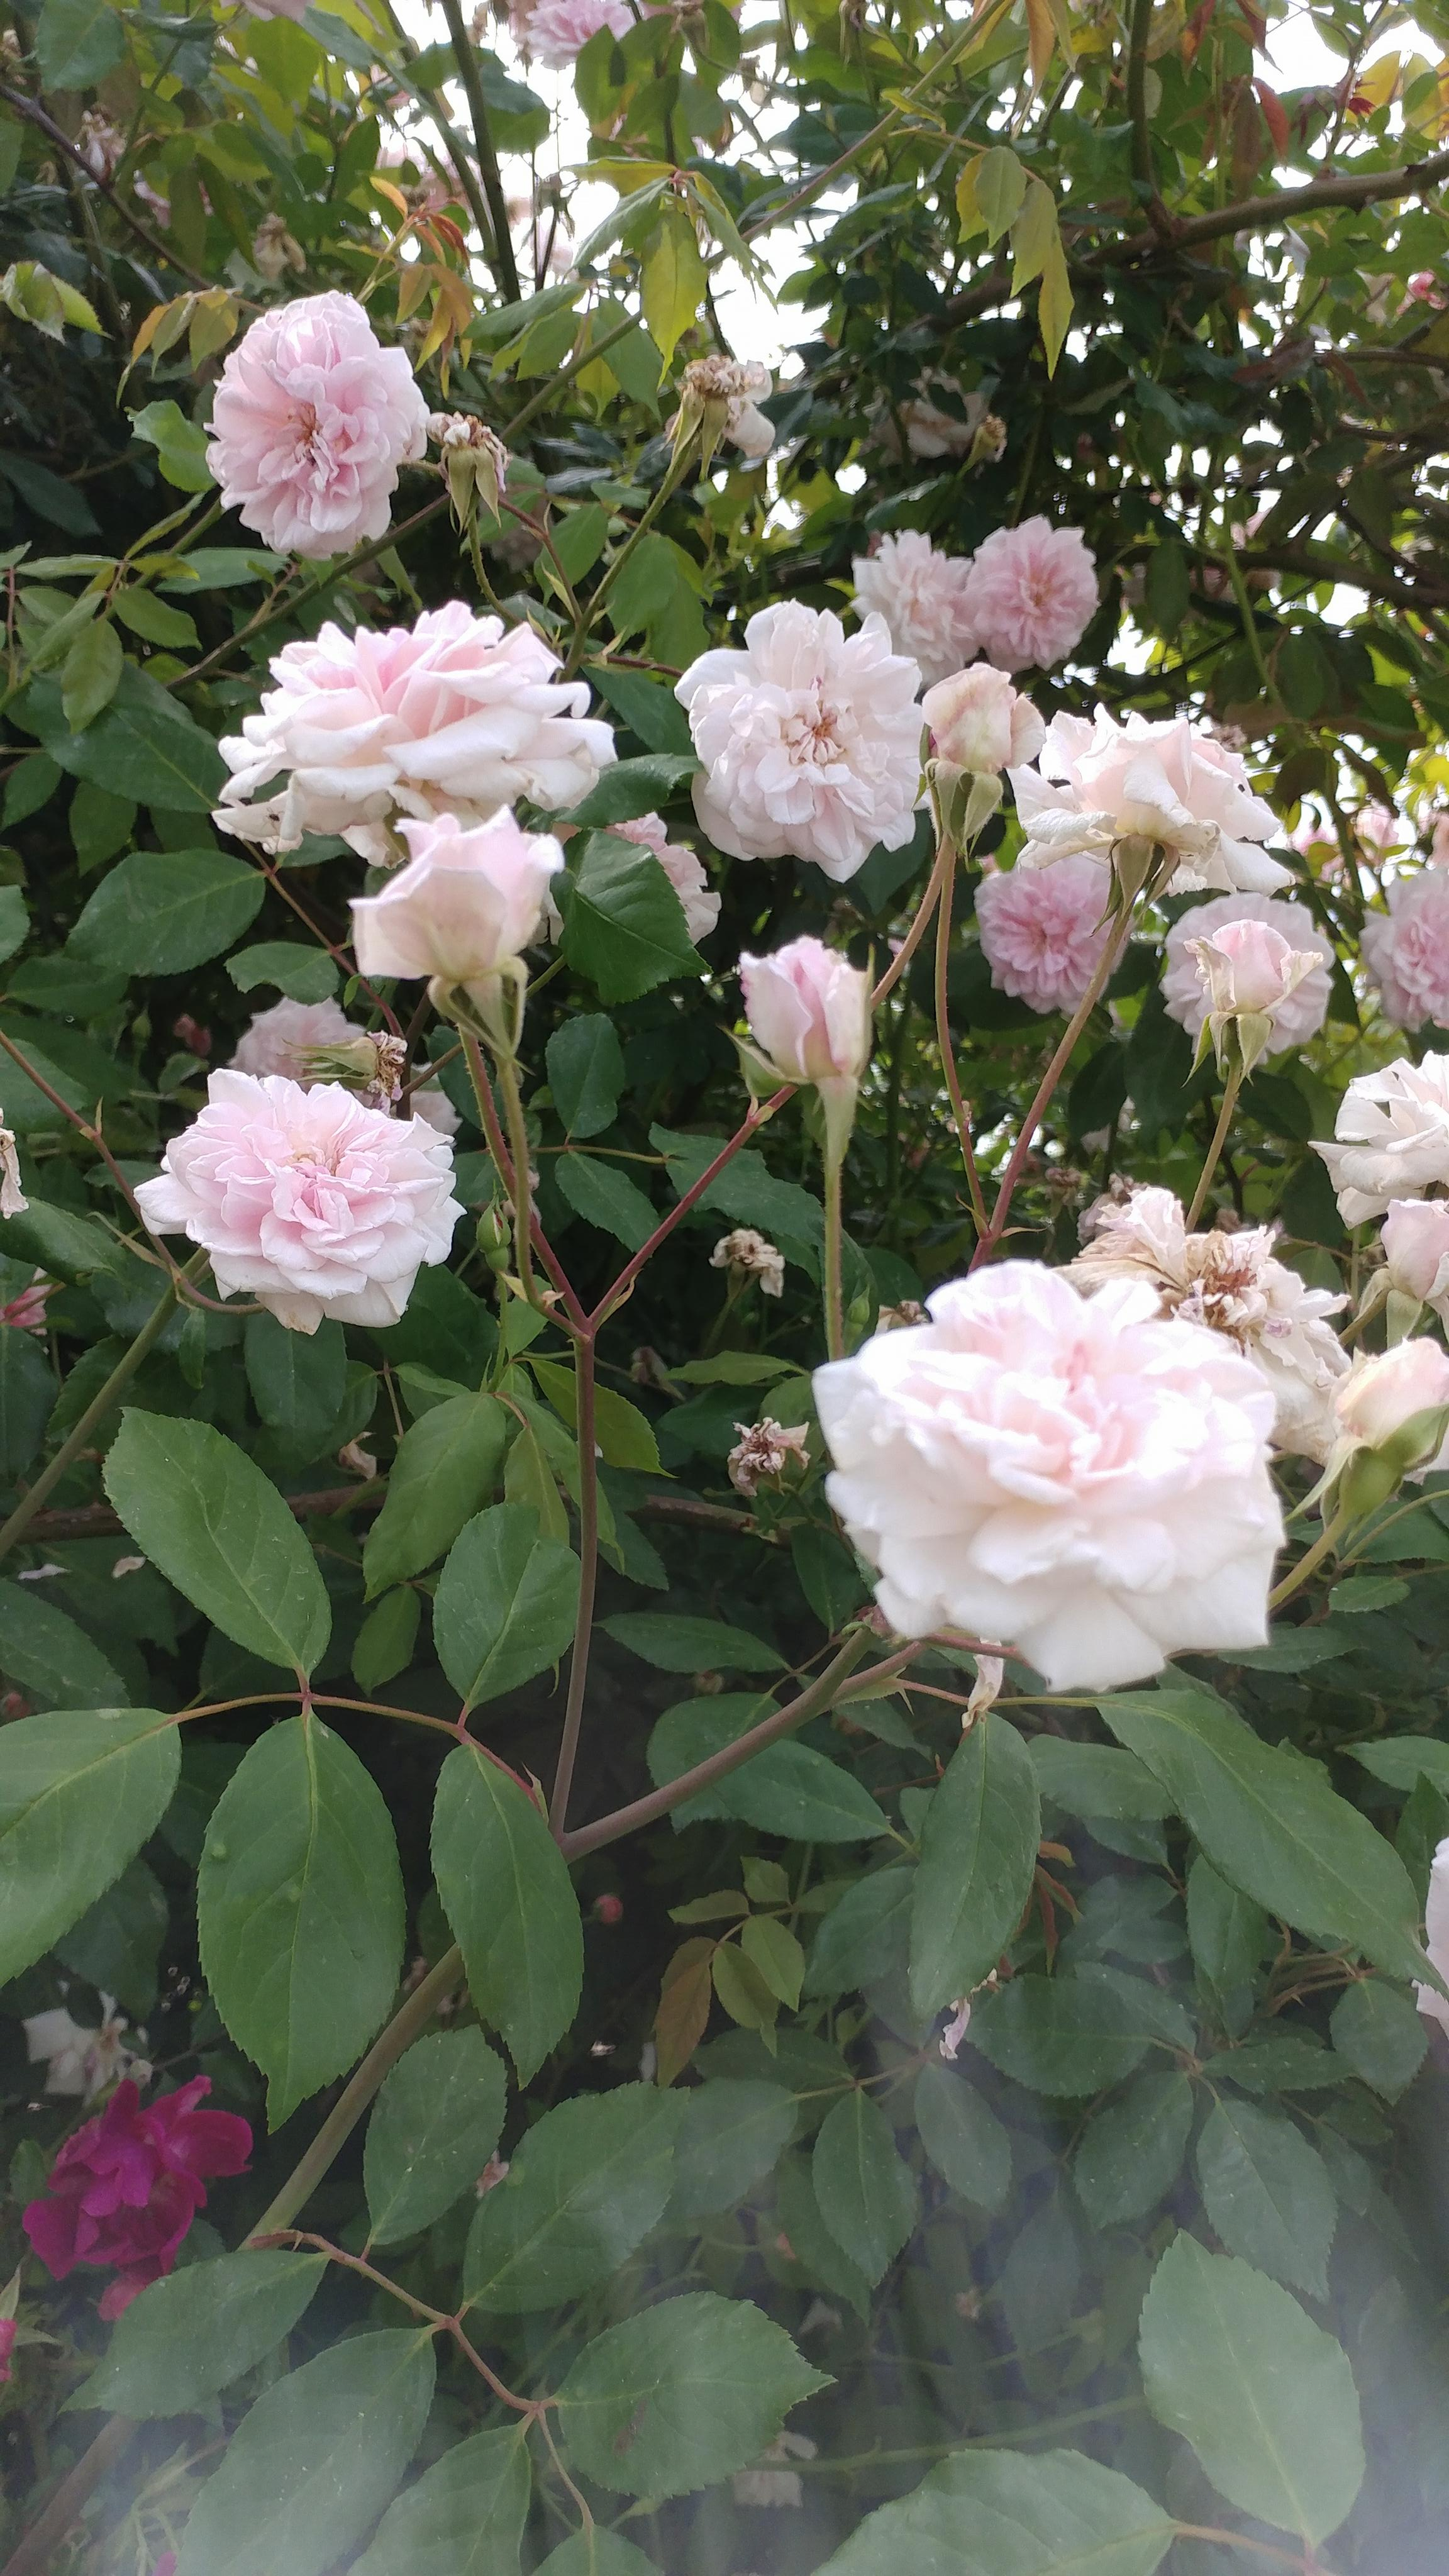 Cultivated Rose species. Photo by Heidy Adams.